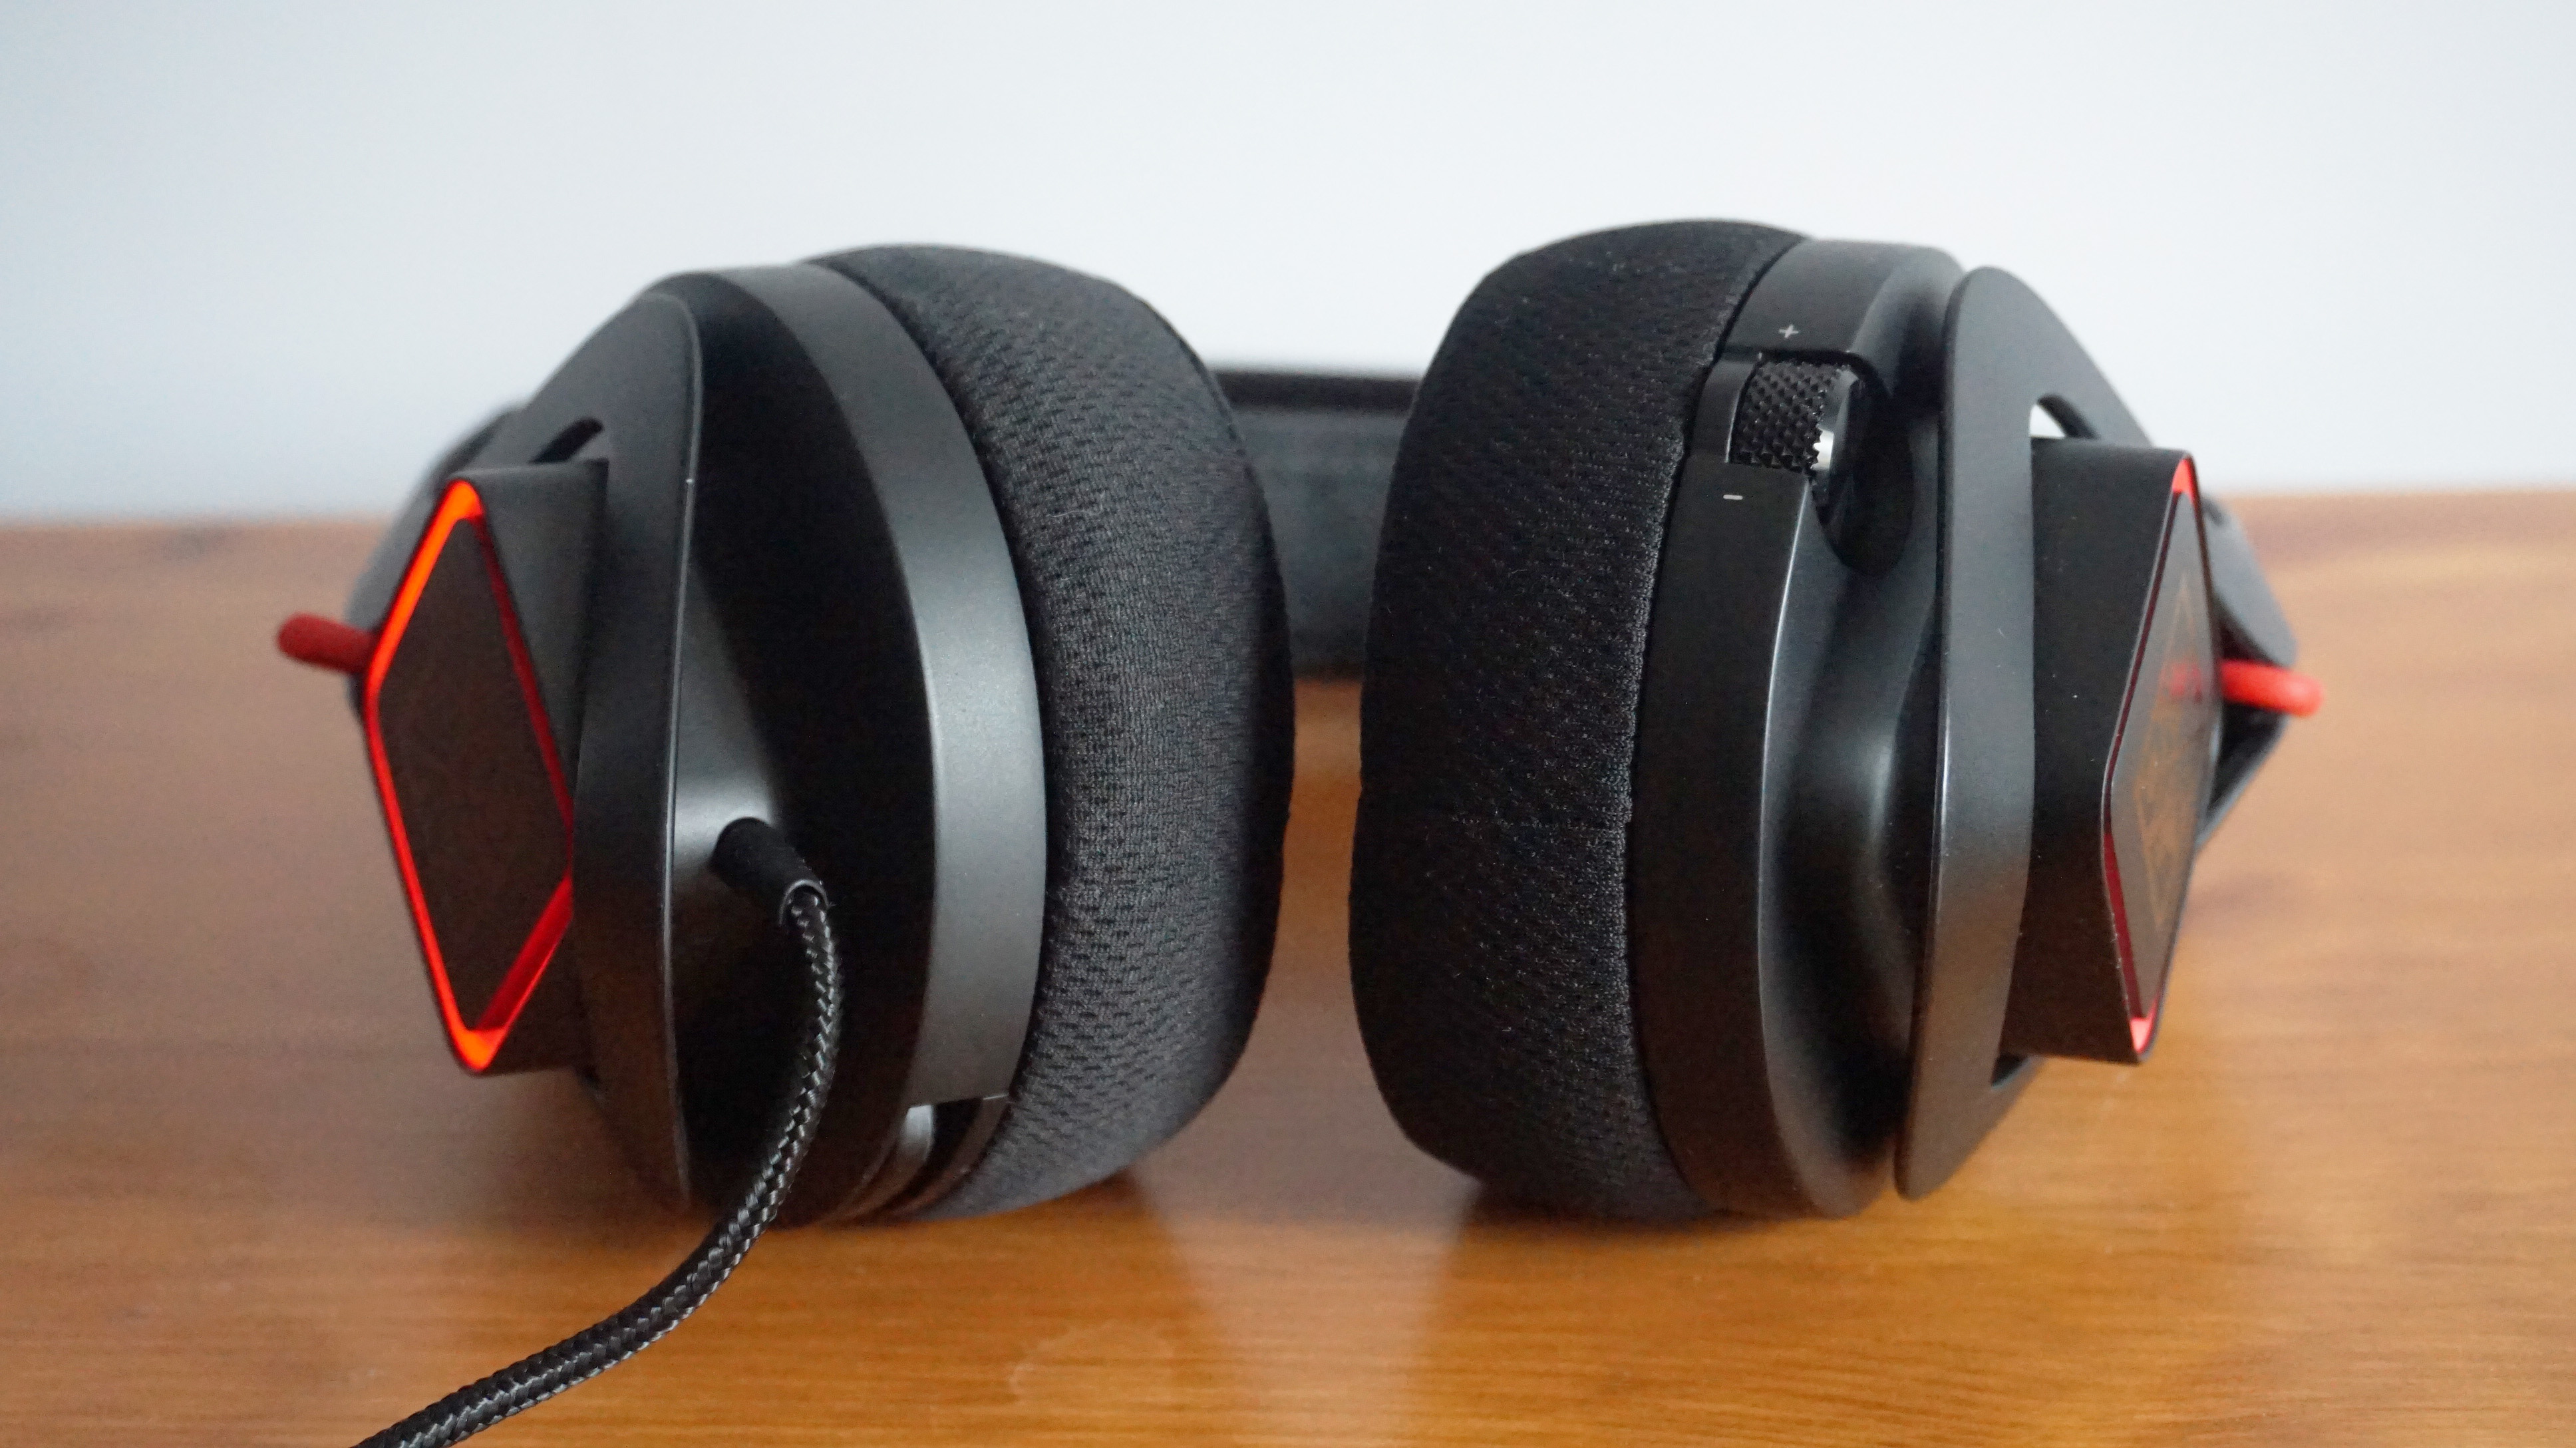 HP Omen Mindframe review: The ear-cooling gaming headset